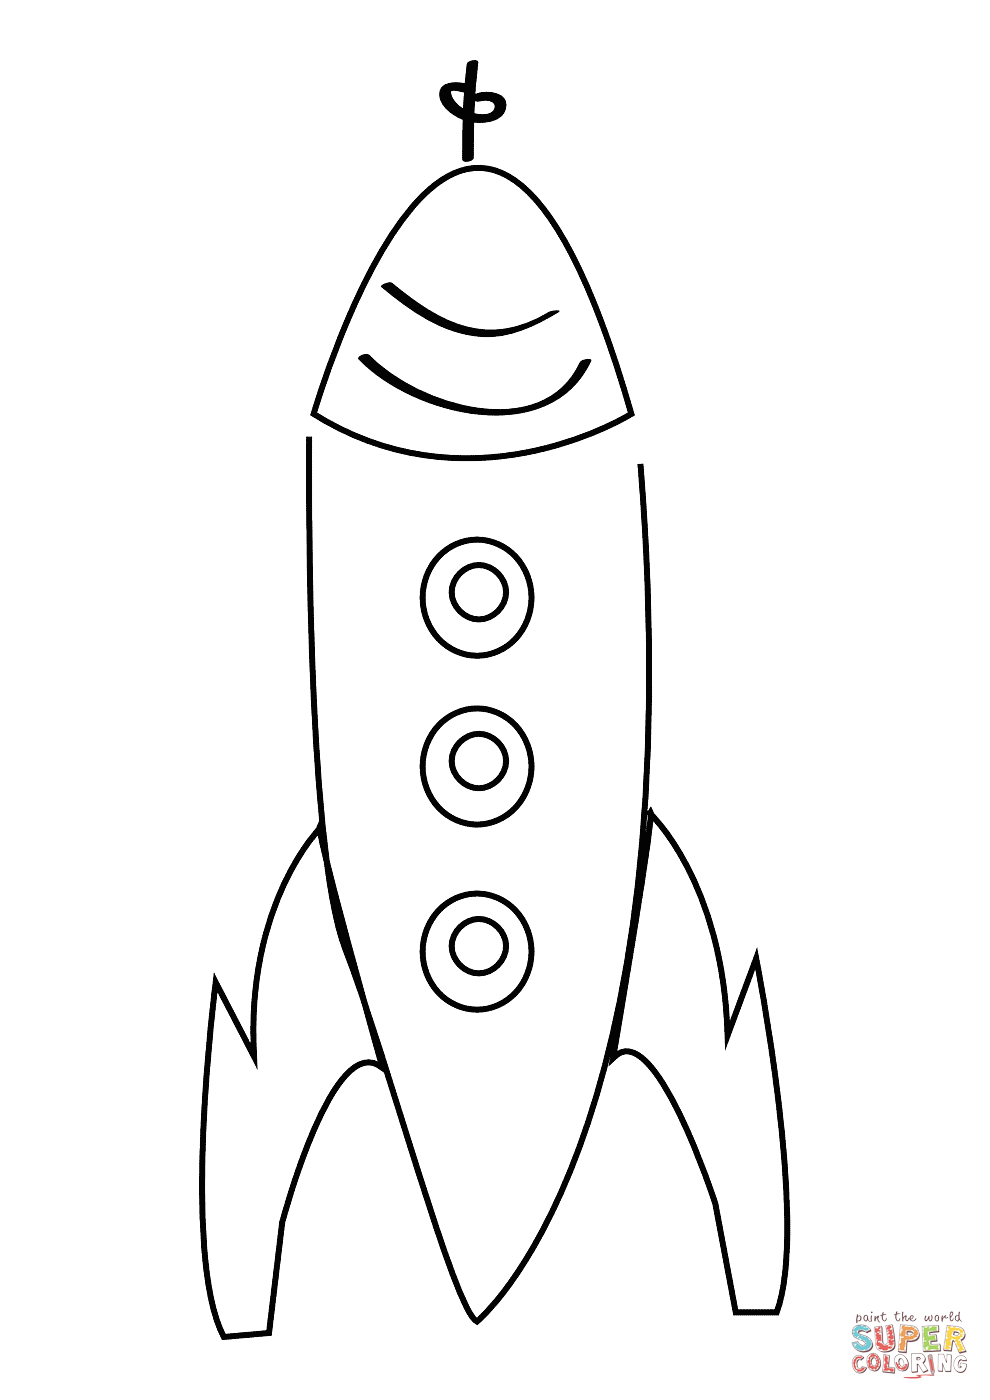 simple drawing of rocket coloring page supercoloring com art